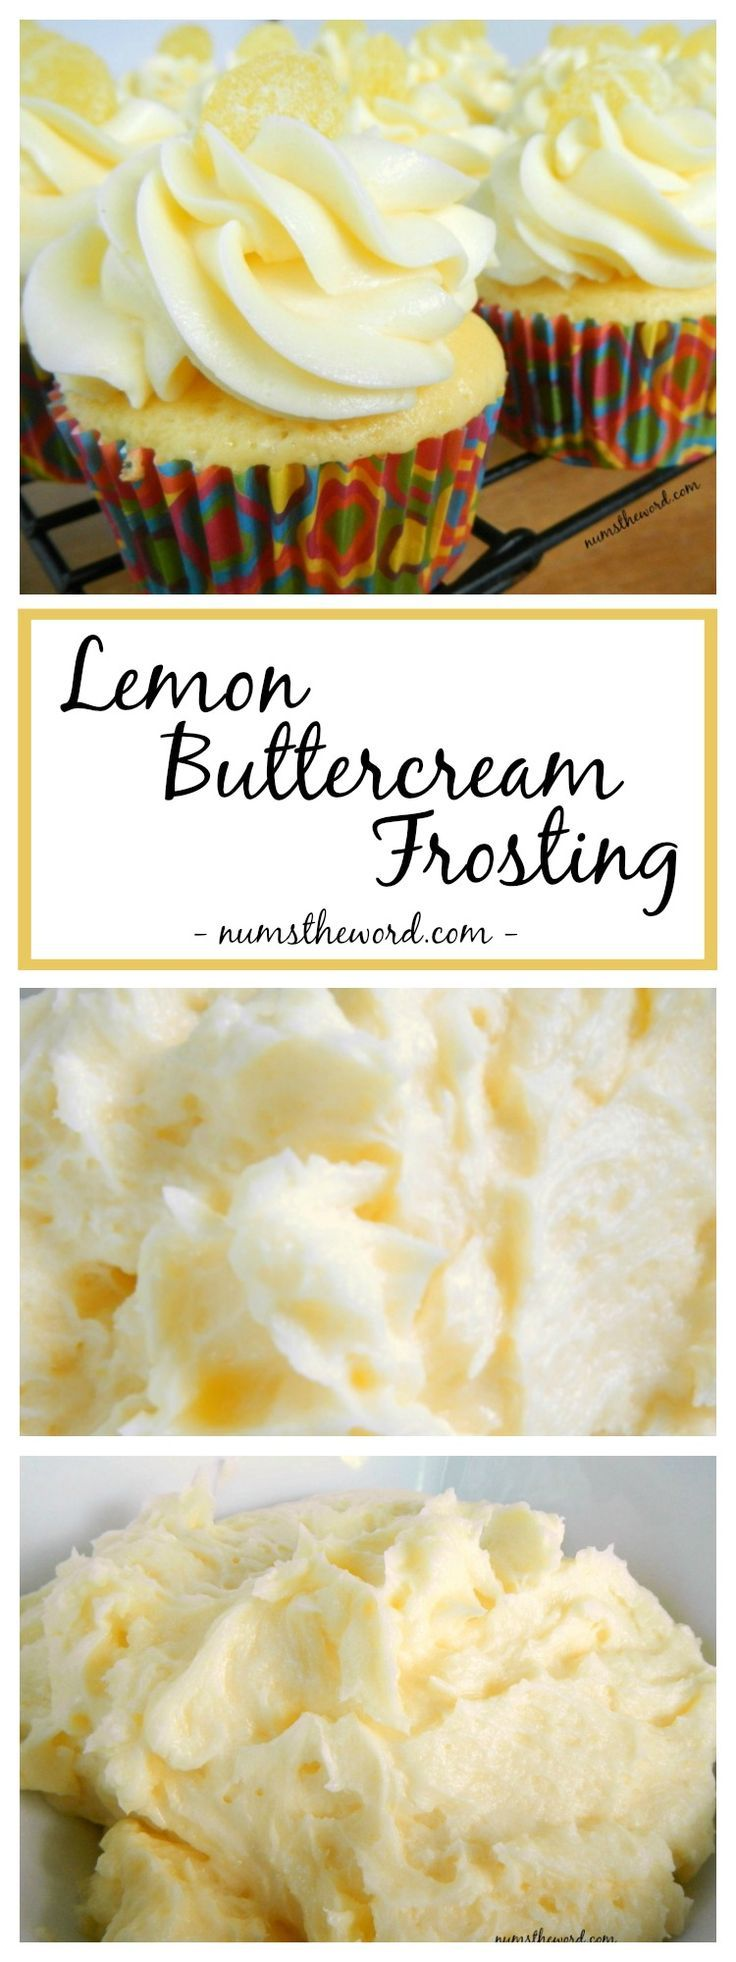 Lemon Buttercream Frosting, is naturally flavored and perfect for any cake or cupcake. Not too sweet, not too strong, just the right amount of lemon in a frosting!